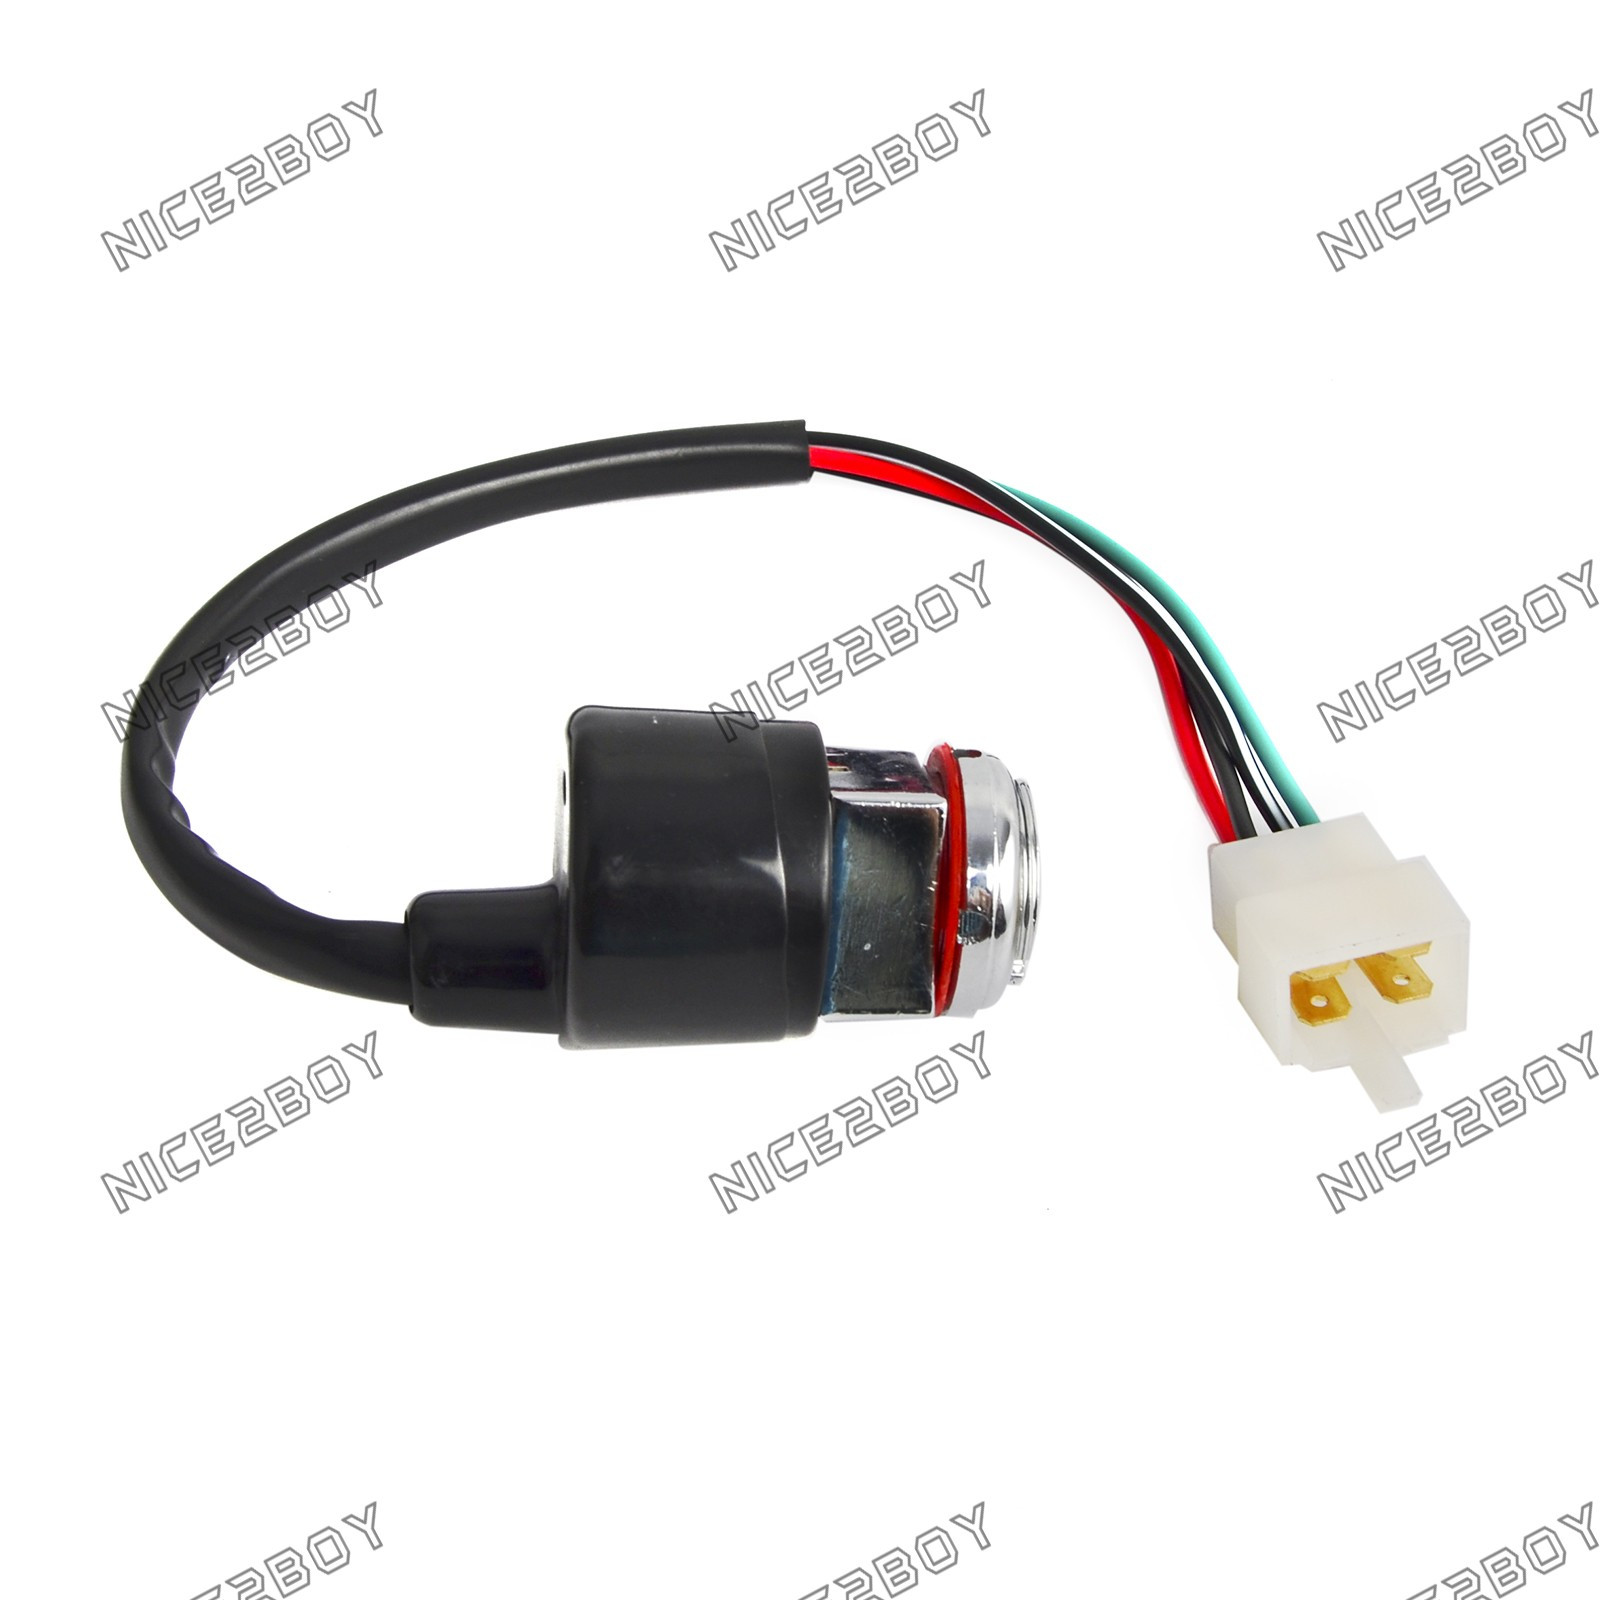 Universal Motorcycle 2 Wire Ignition Key Switch for Honda CB100 ...